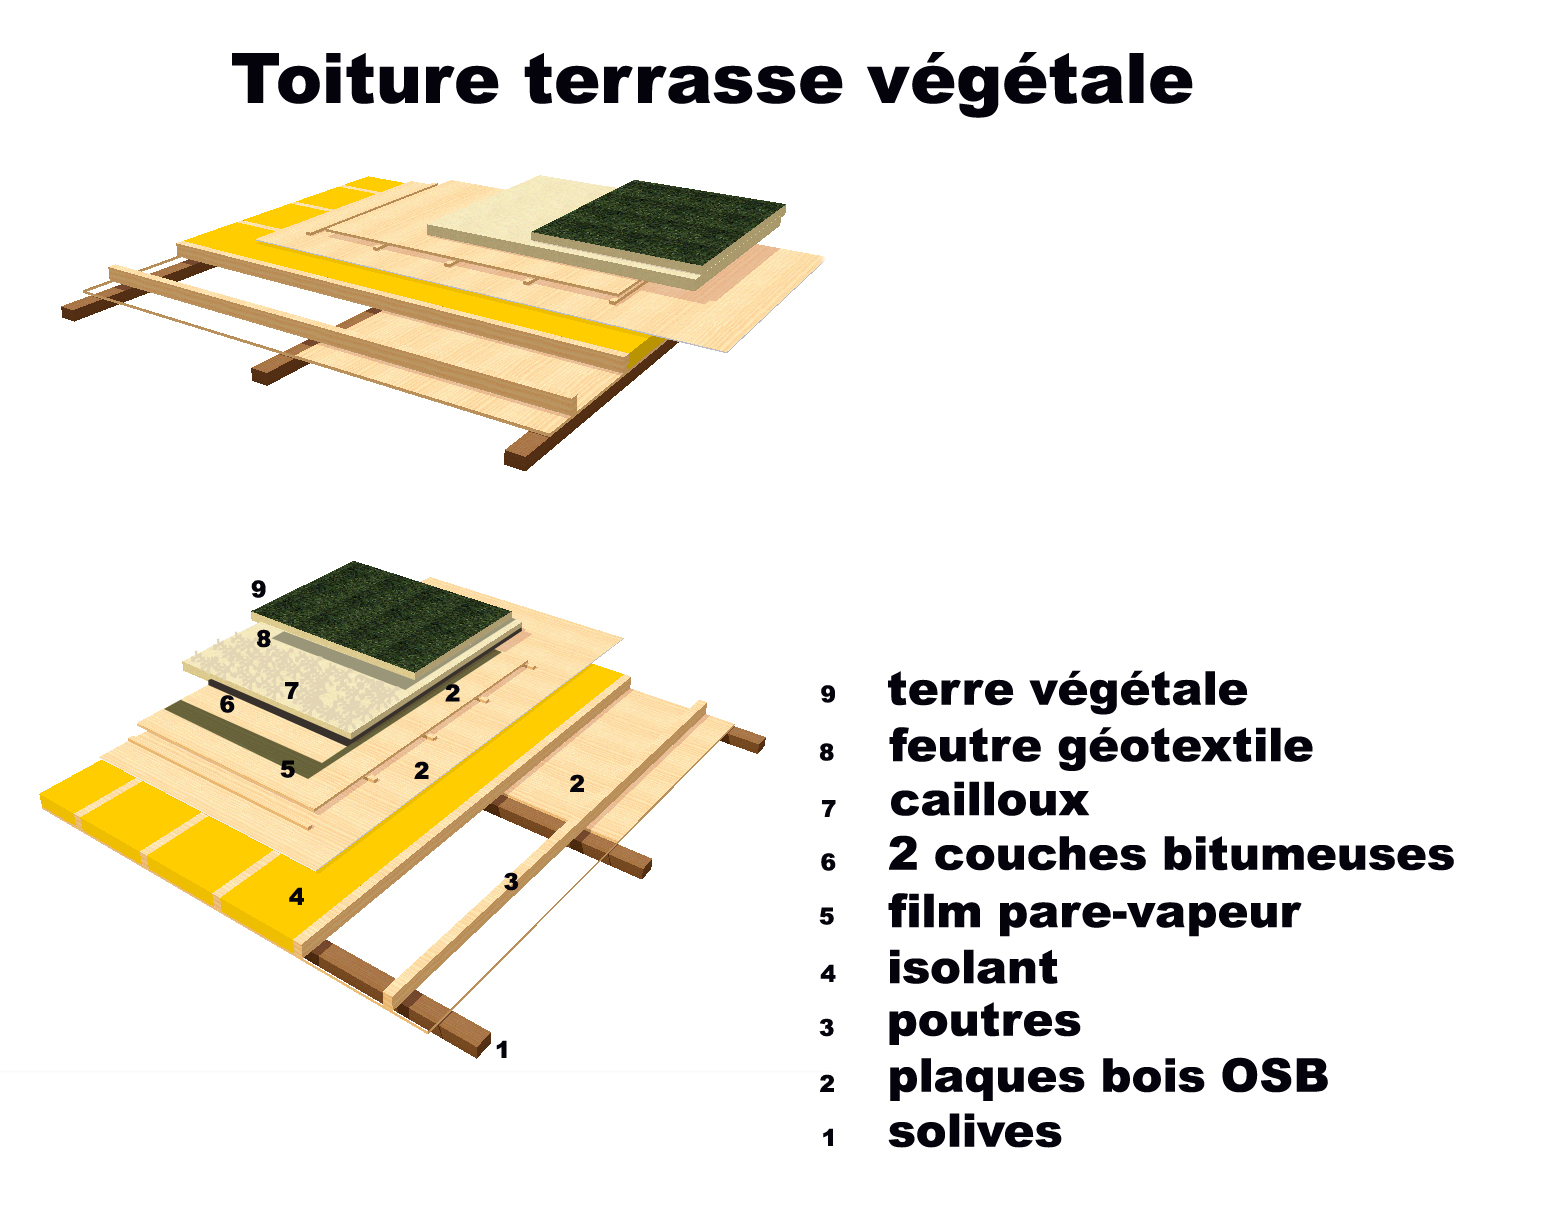 Toit terrasse vegetal plan maison contemporaine for Toit terrasse vegetal